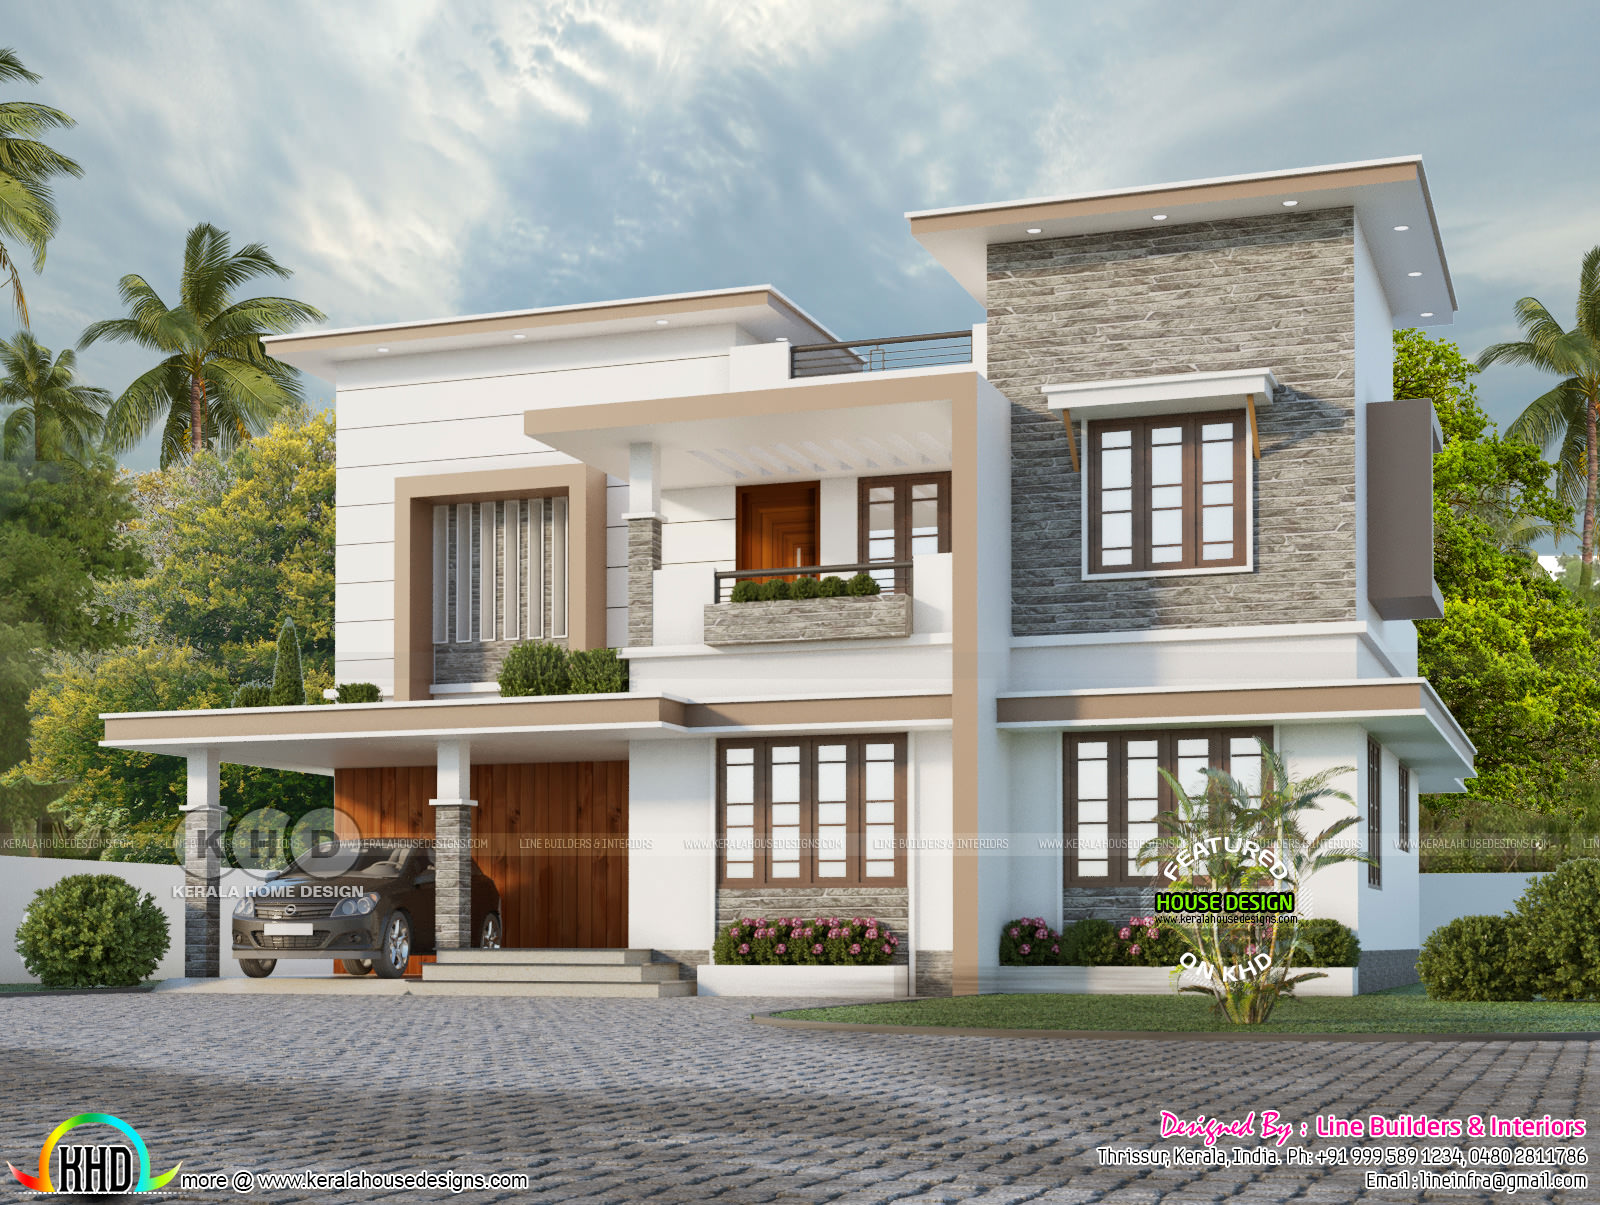 1982 Sq Ft Flat Roof Modern House Kerala Home Design And Floor Plans 8000 Houses